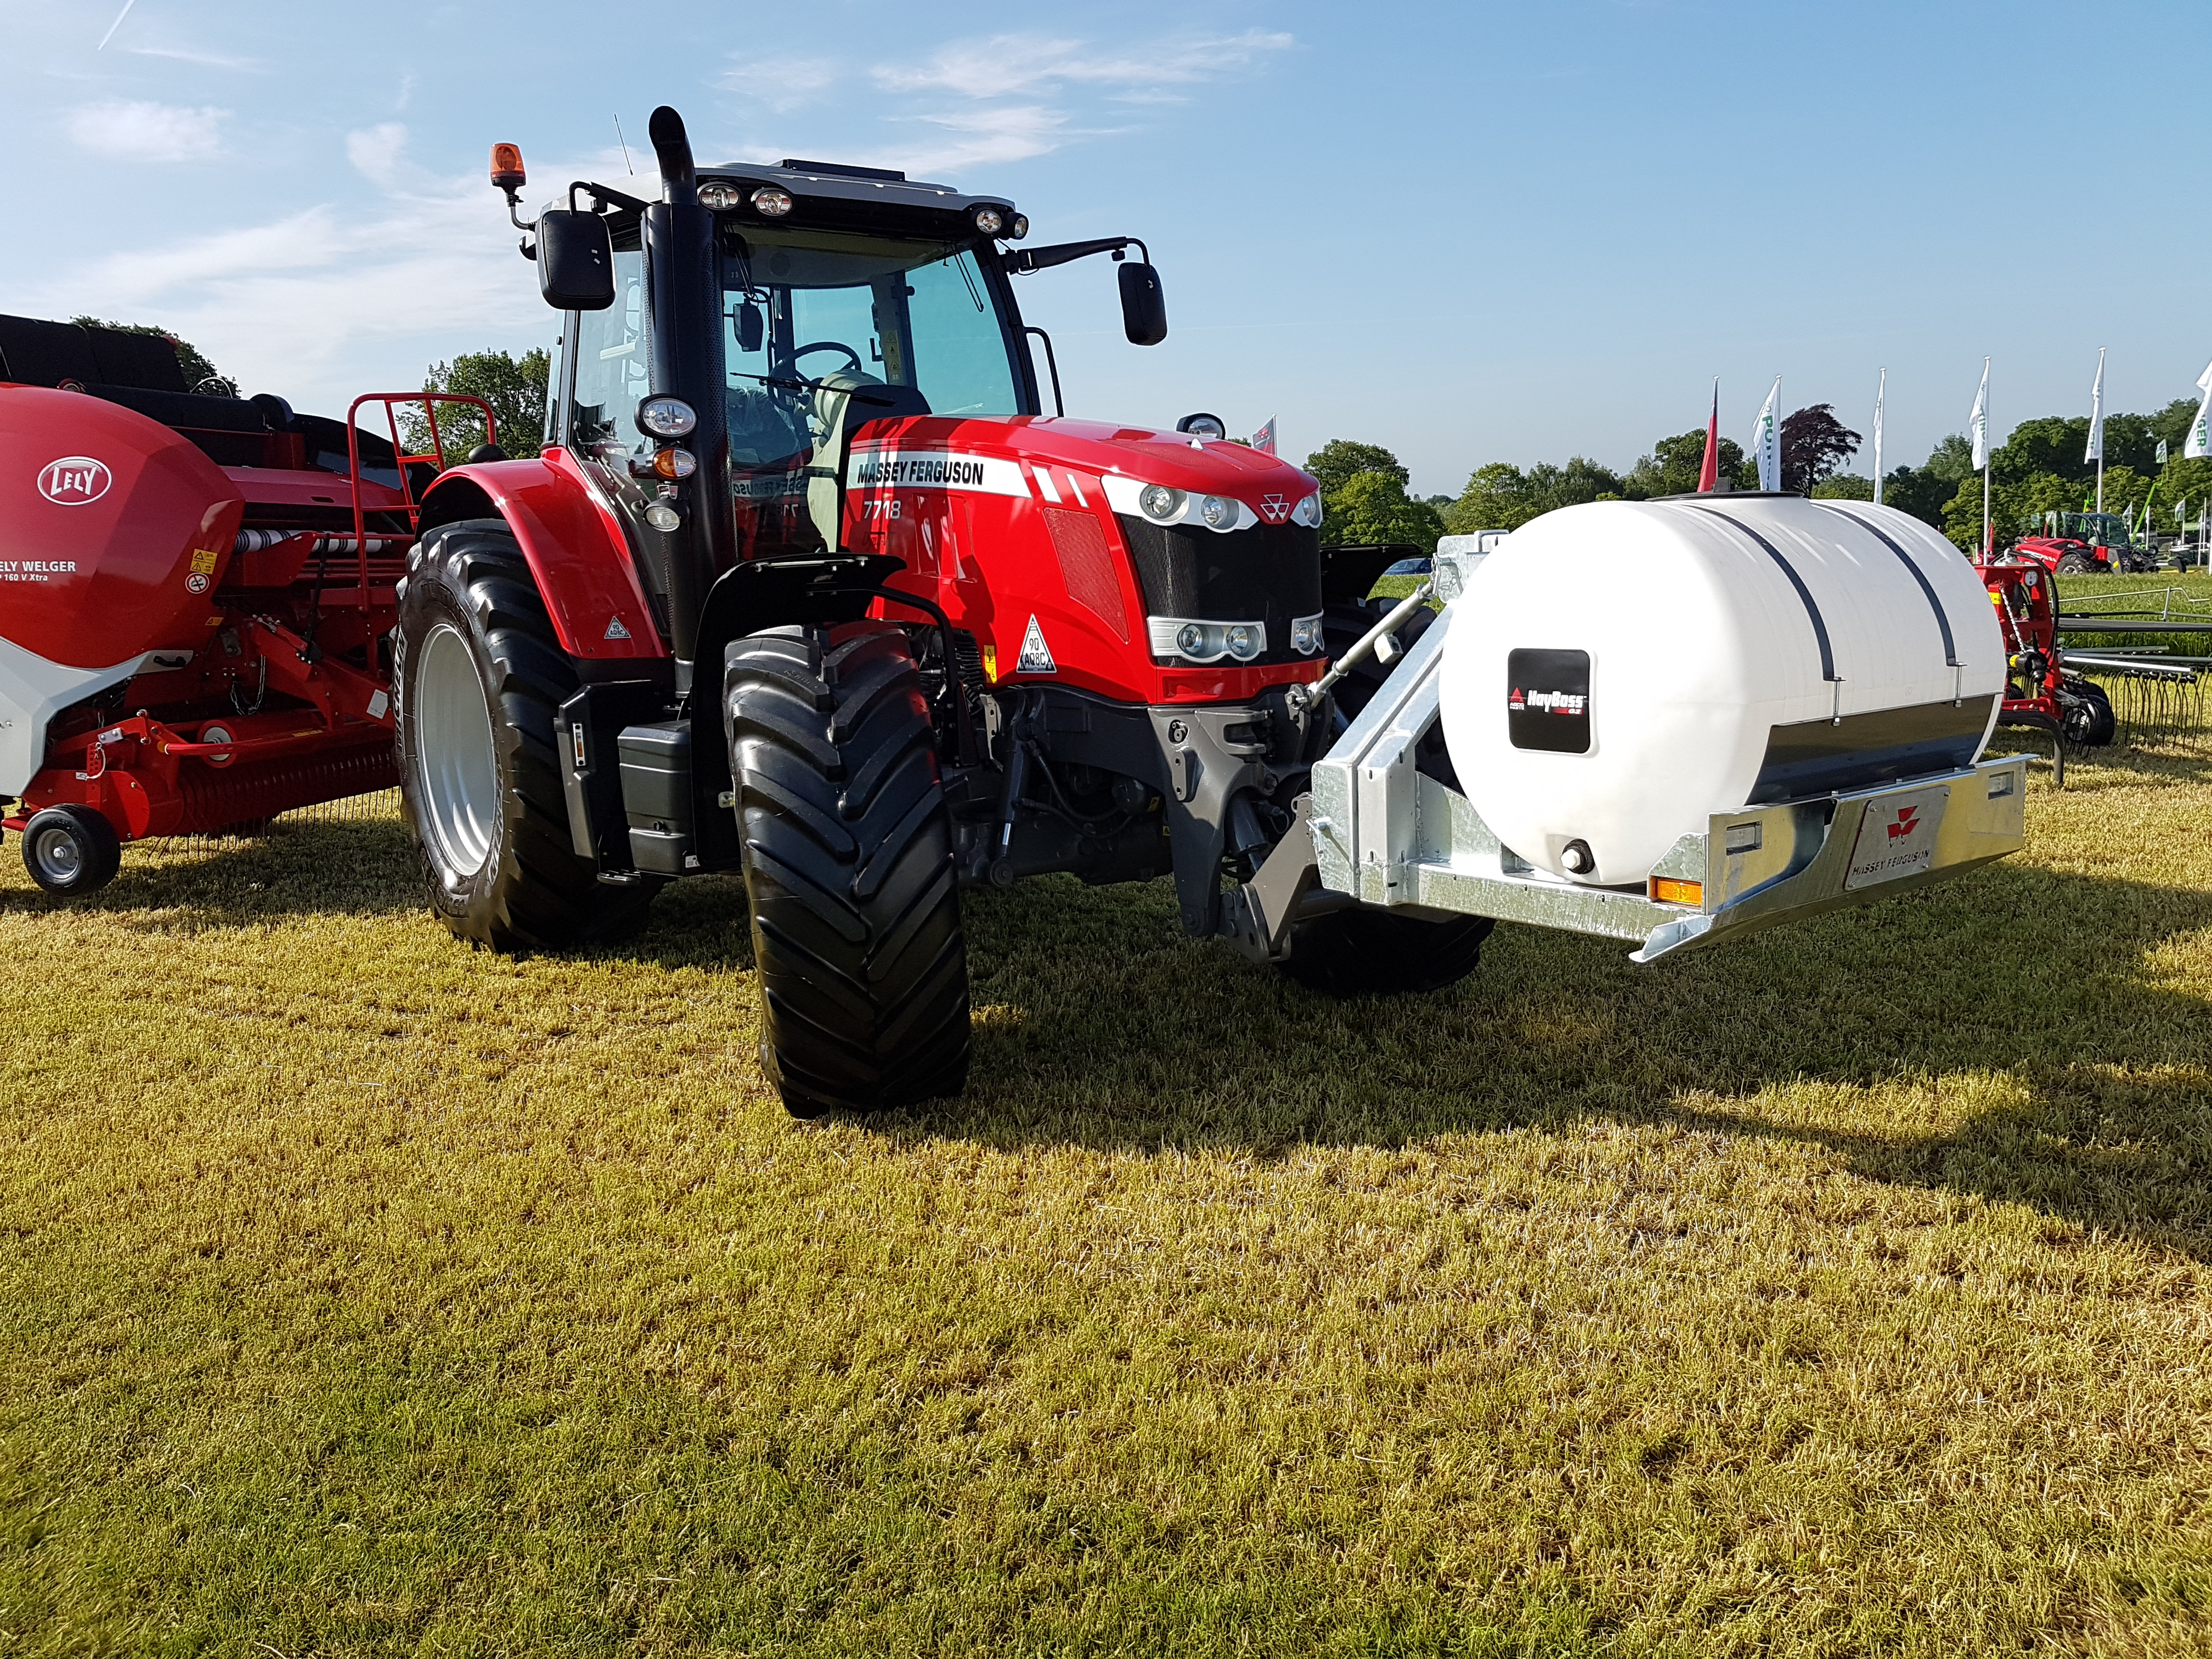 Front mounted HayBoss applicator